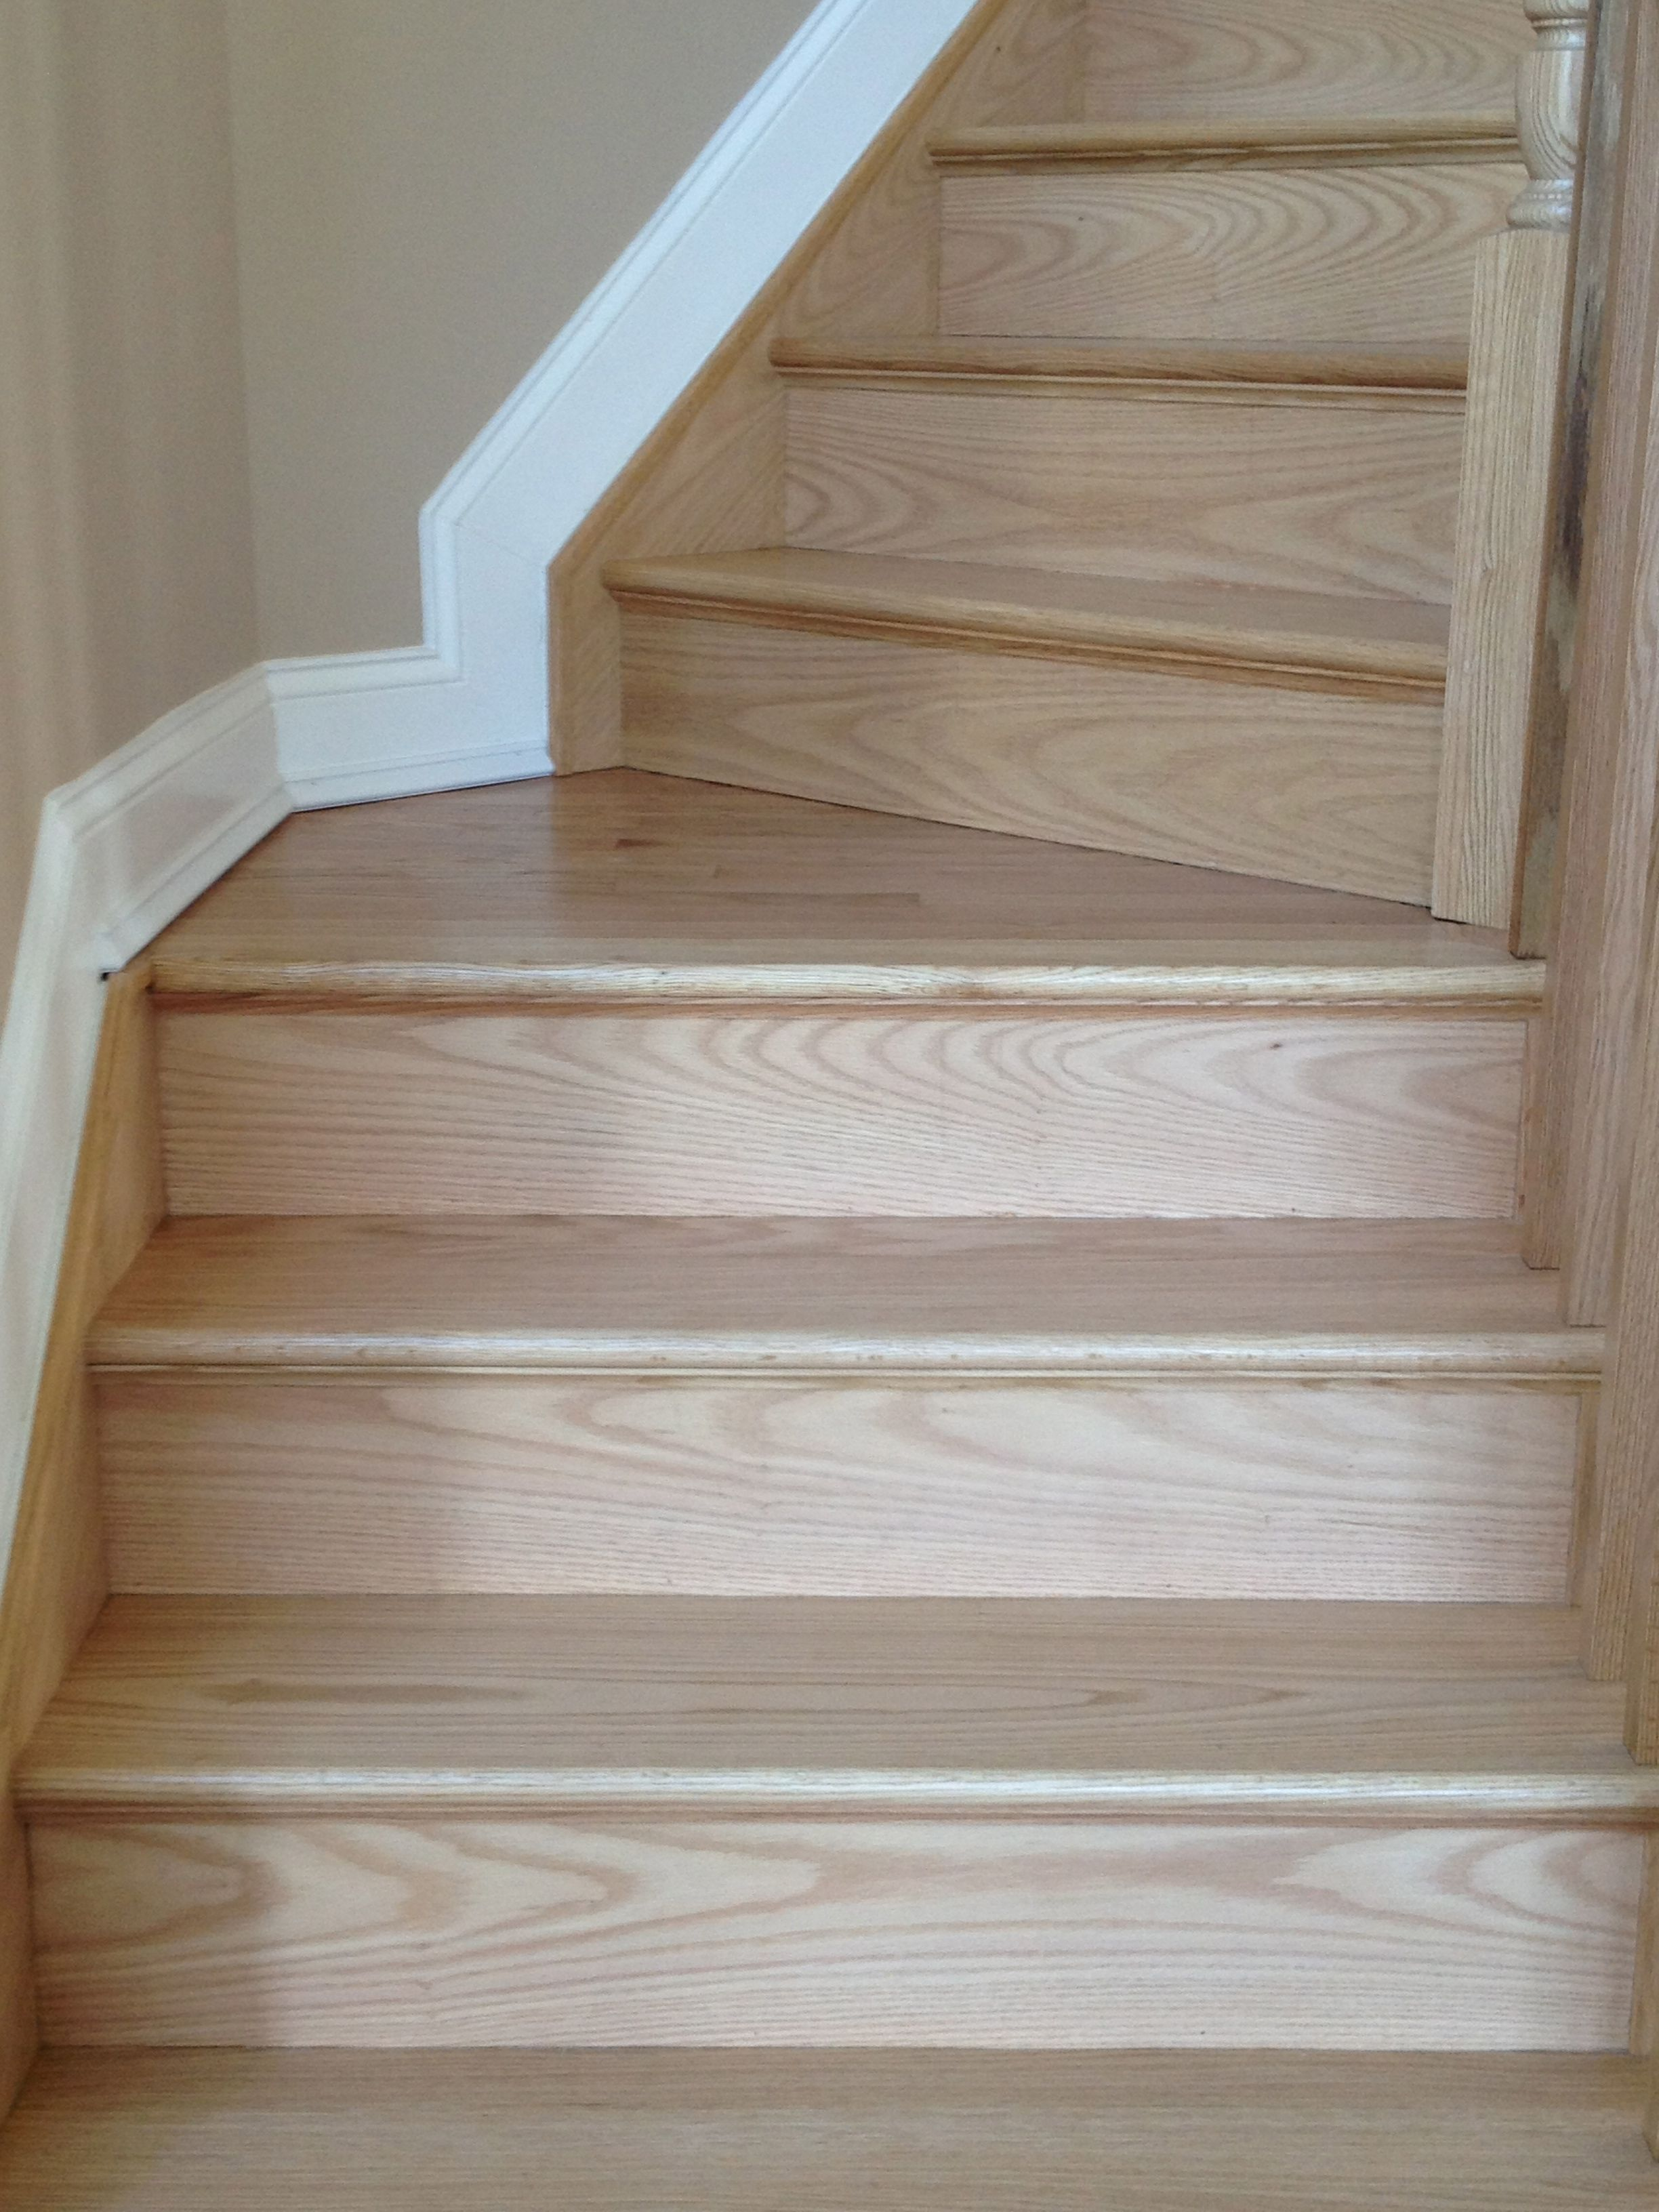 Gorsegner Brothers Hardwood Floors Features Replacement